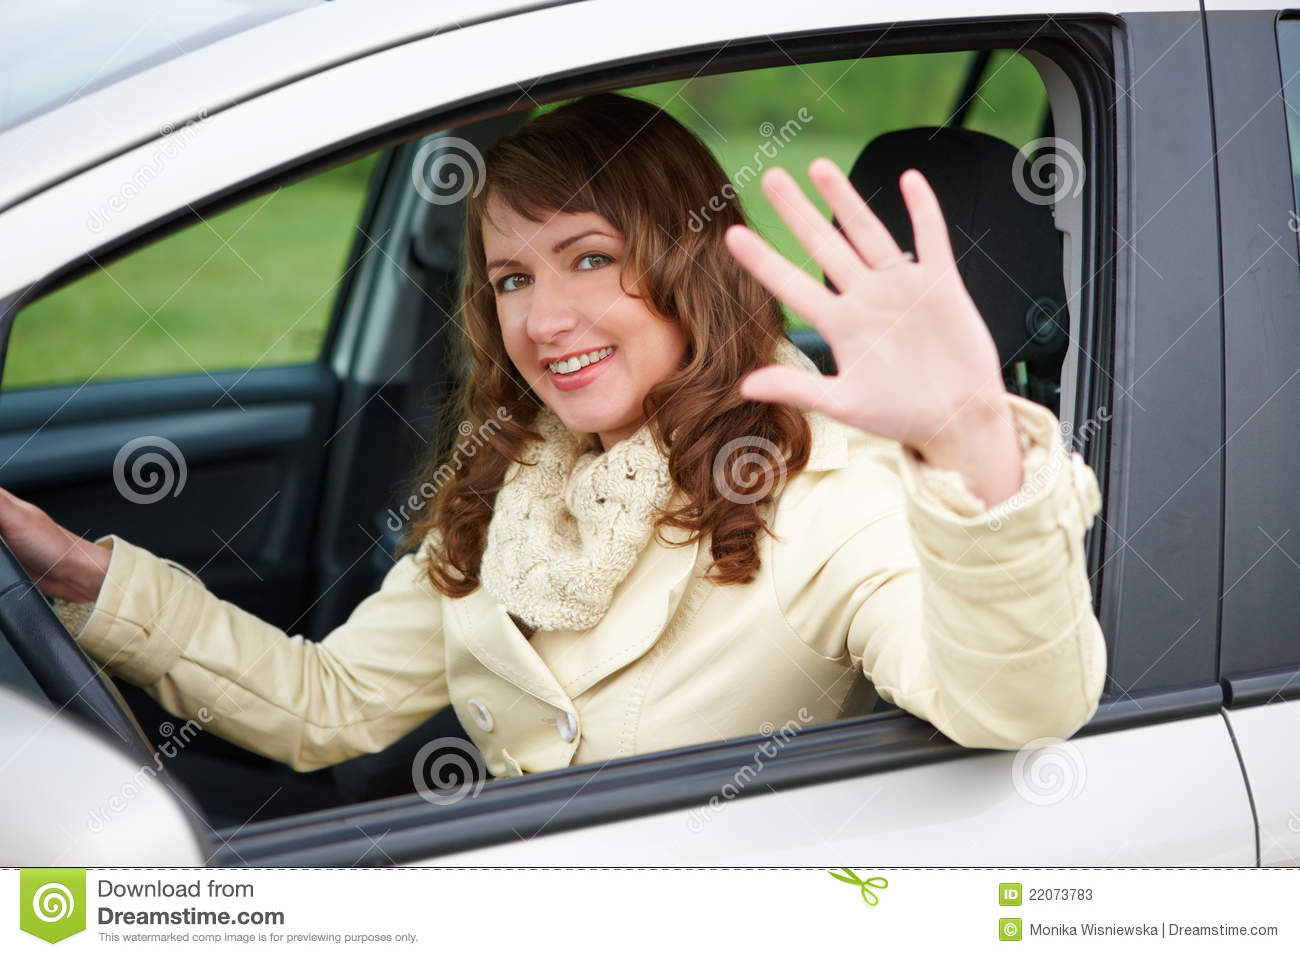 Car Insurance Prices >> Woman Sitting In The Car And Waving Stock Image - Image: 22073783